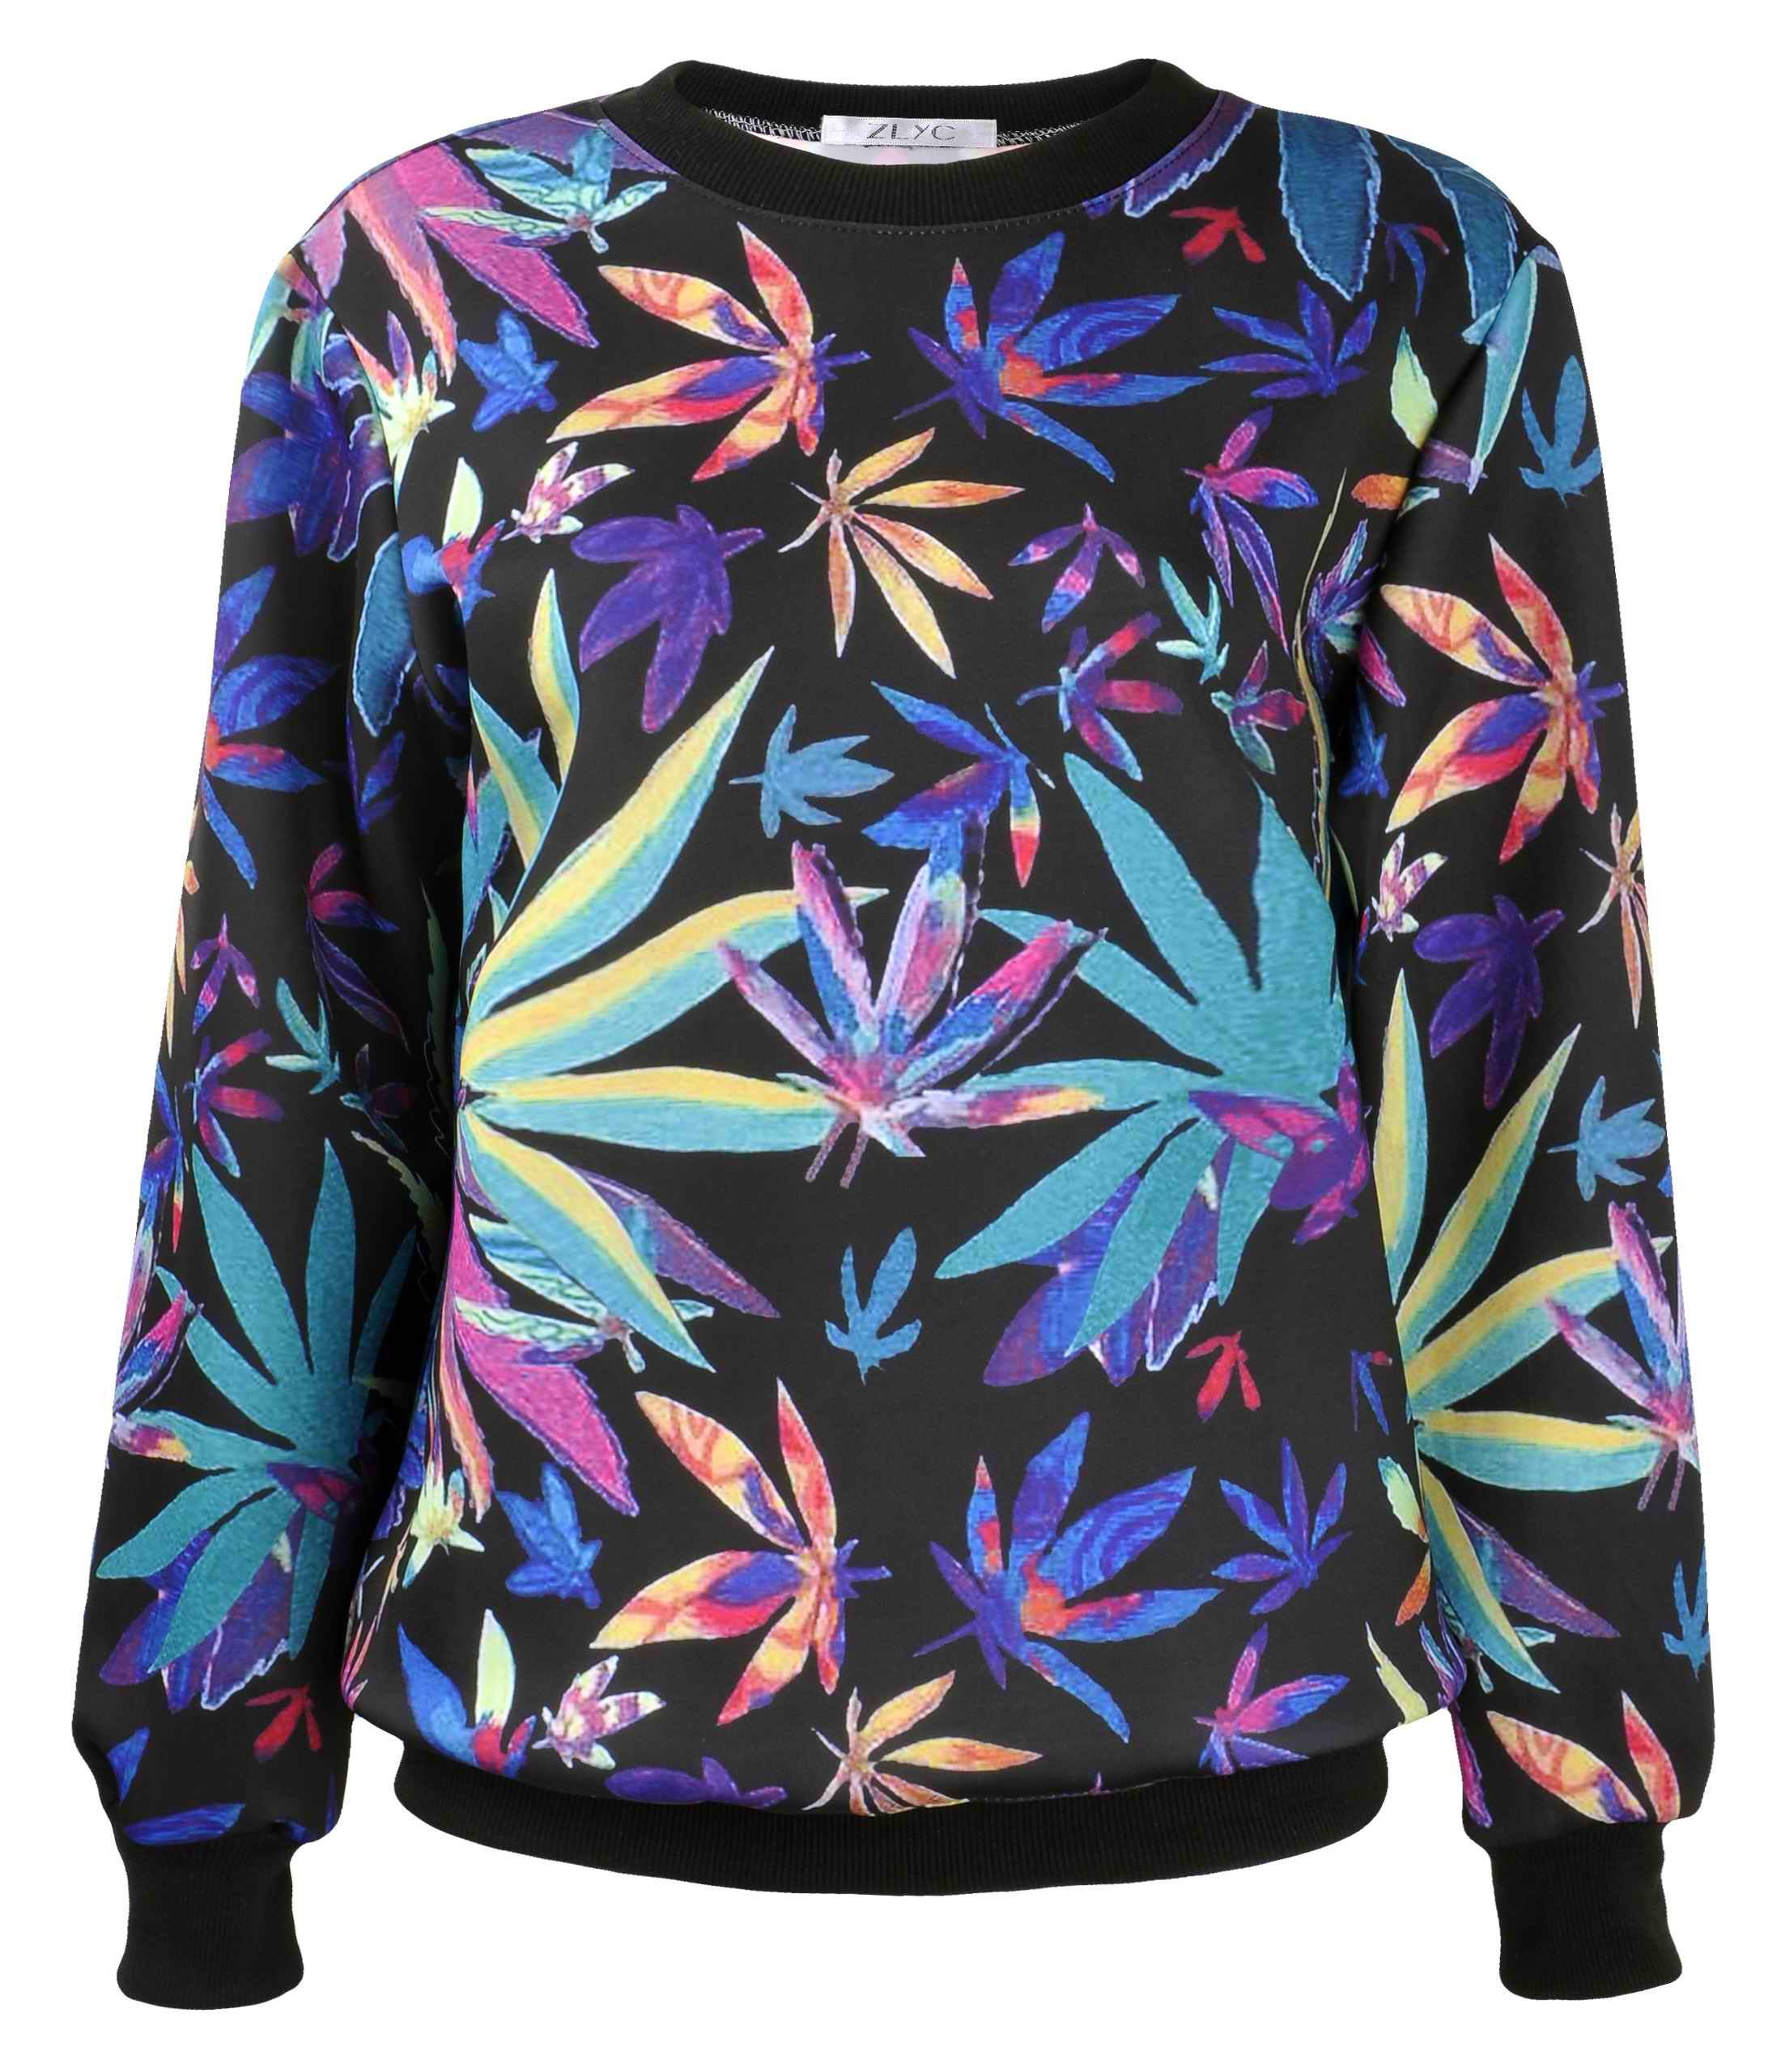 weed sweaters for girls   pixgood     good pix galleries